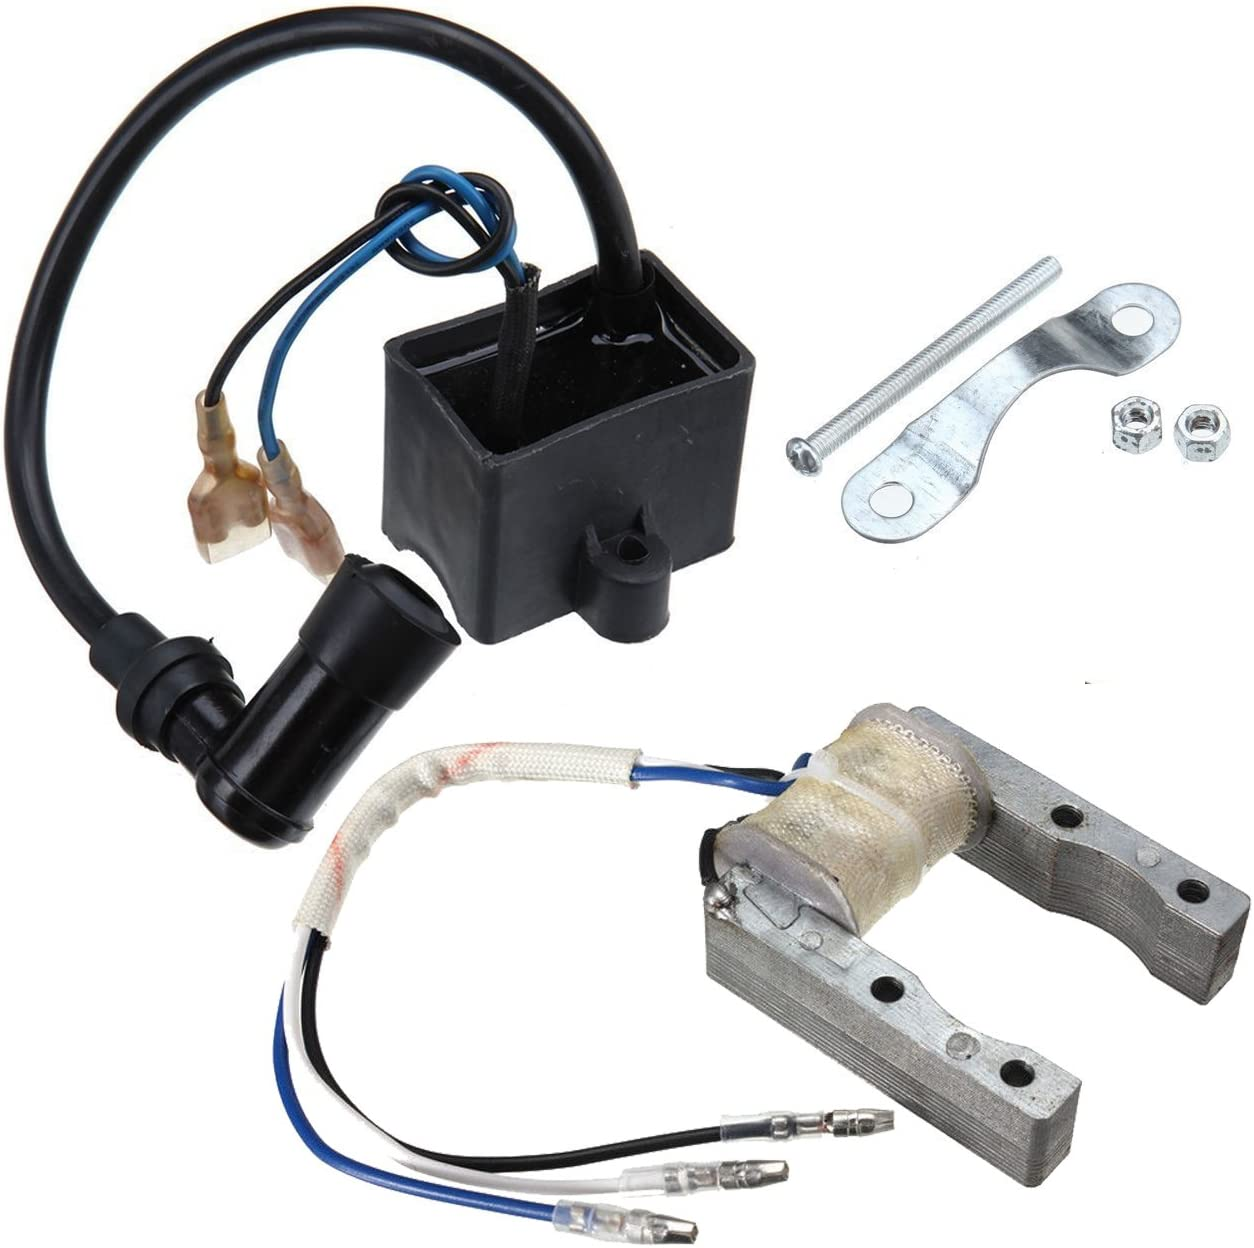 Ignition Coil CDI For 50cc 60 66 80cc 2Stroke Engine Motorized Bicycle Push Bike